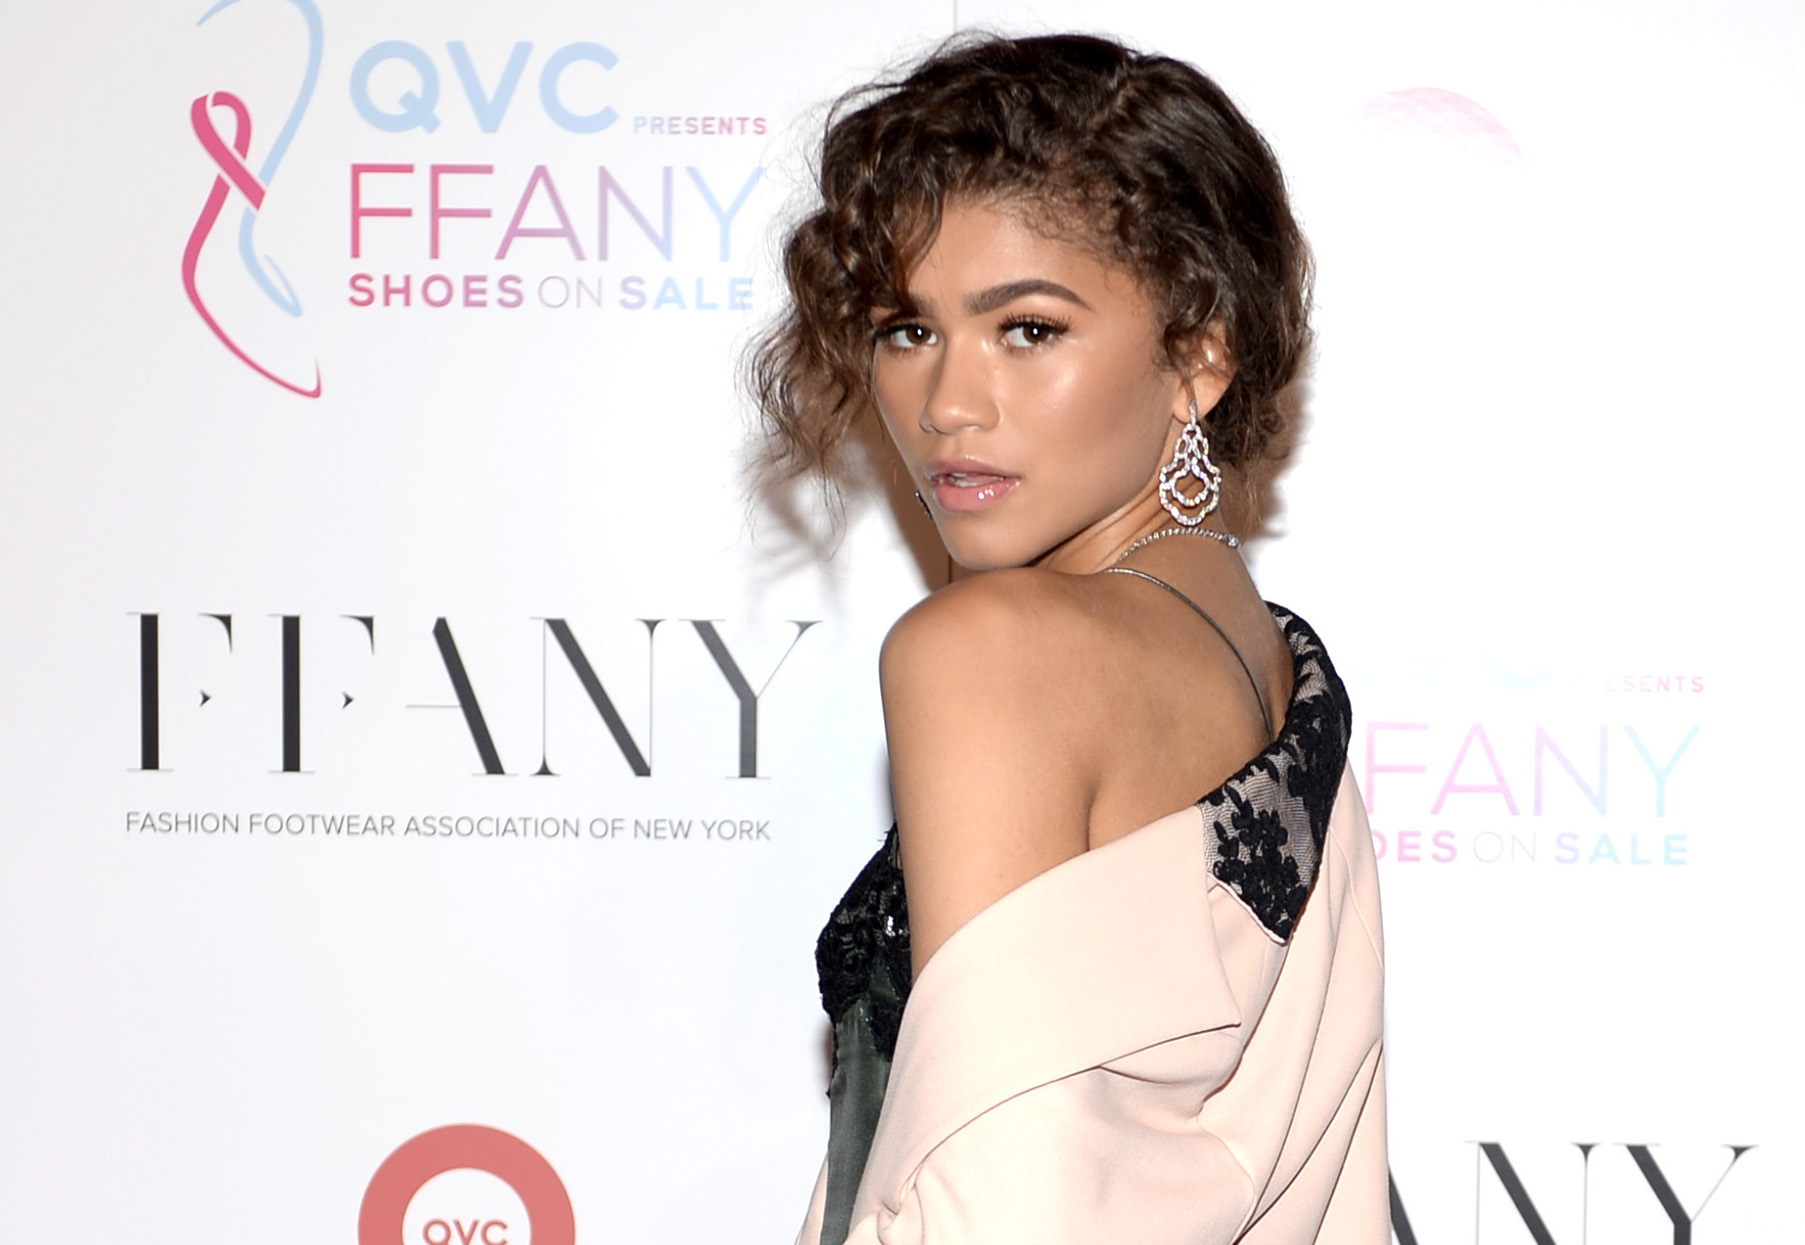 Here's your first look at Zendaya's new clothing line